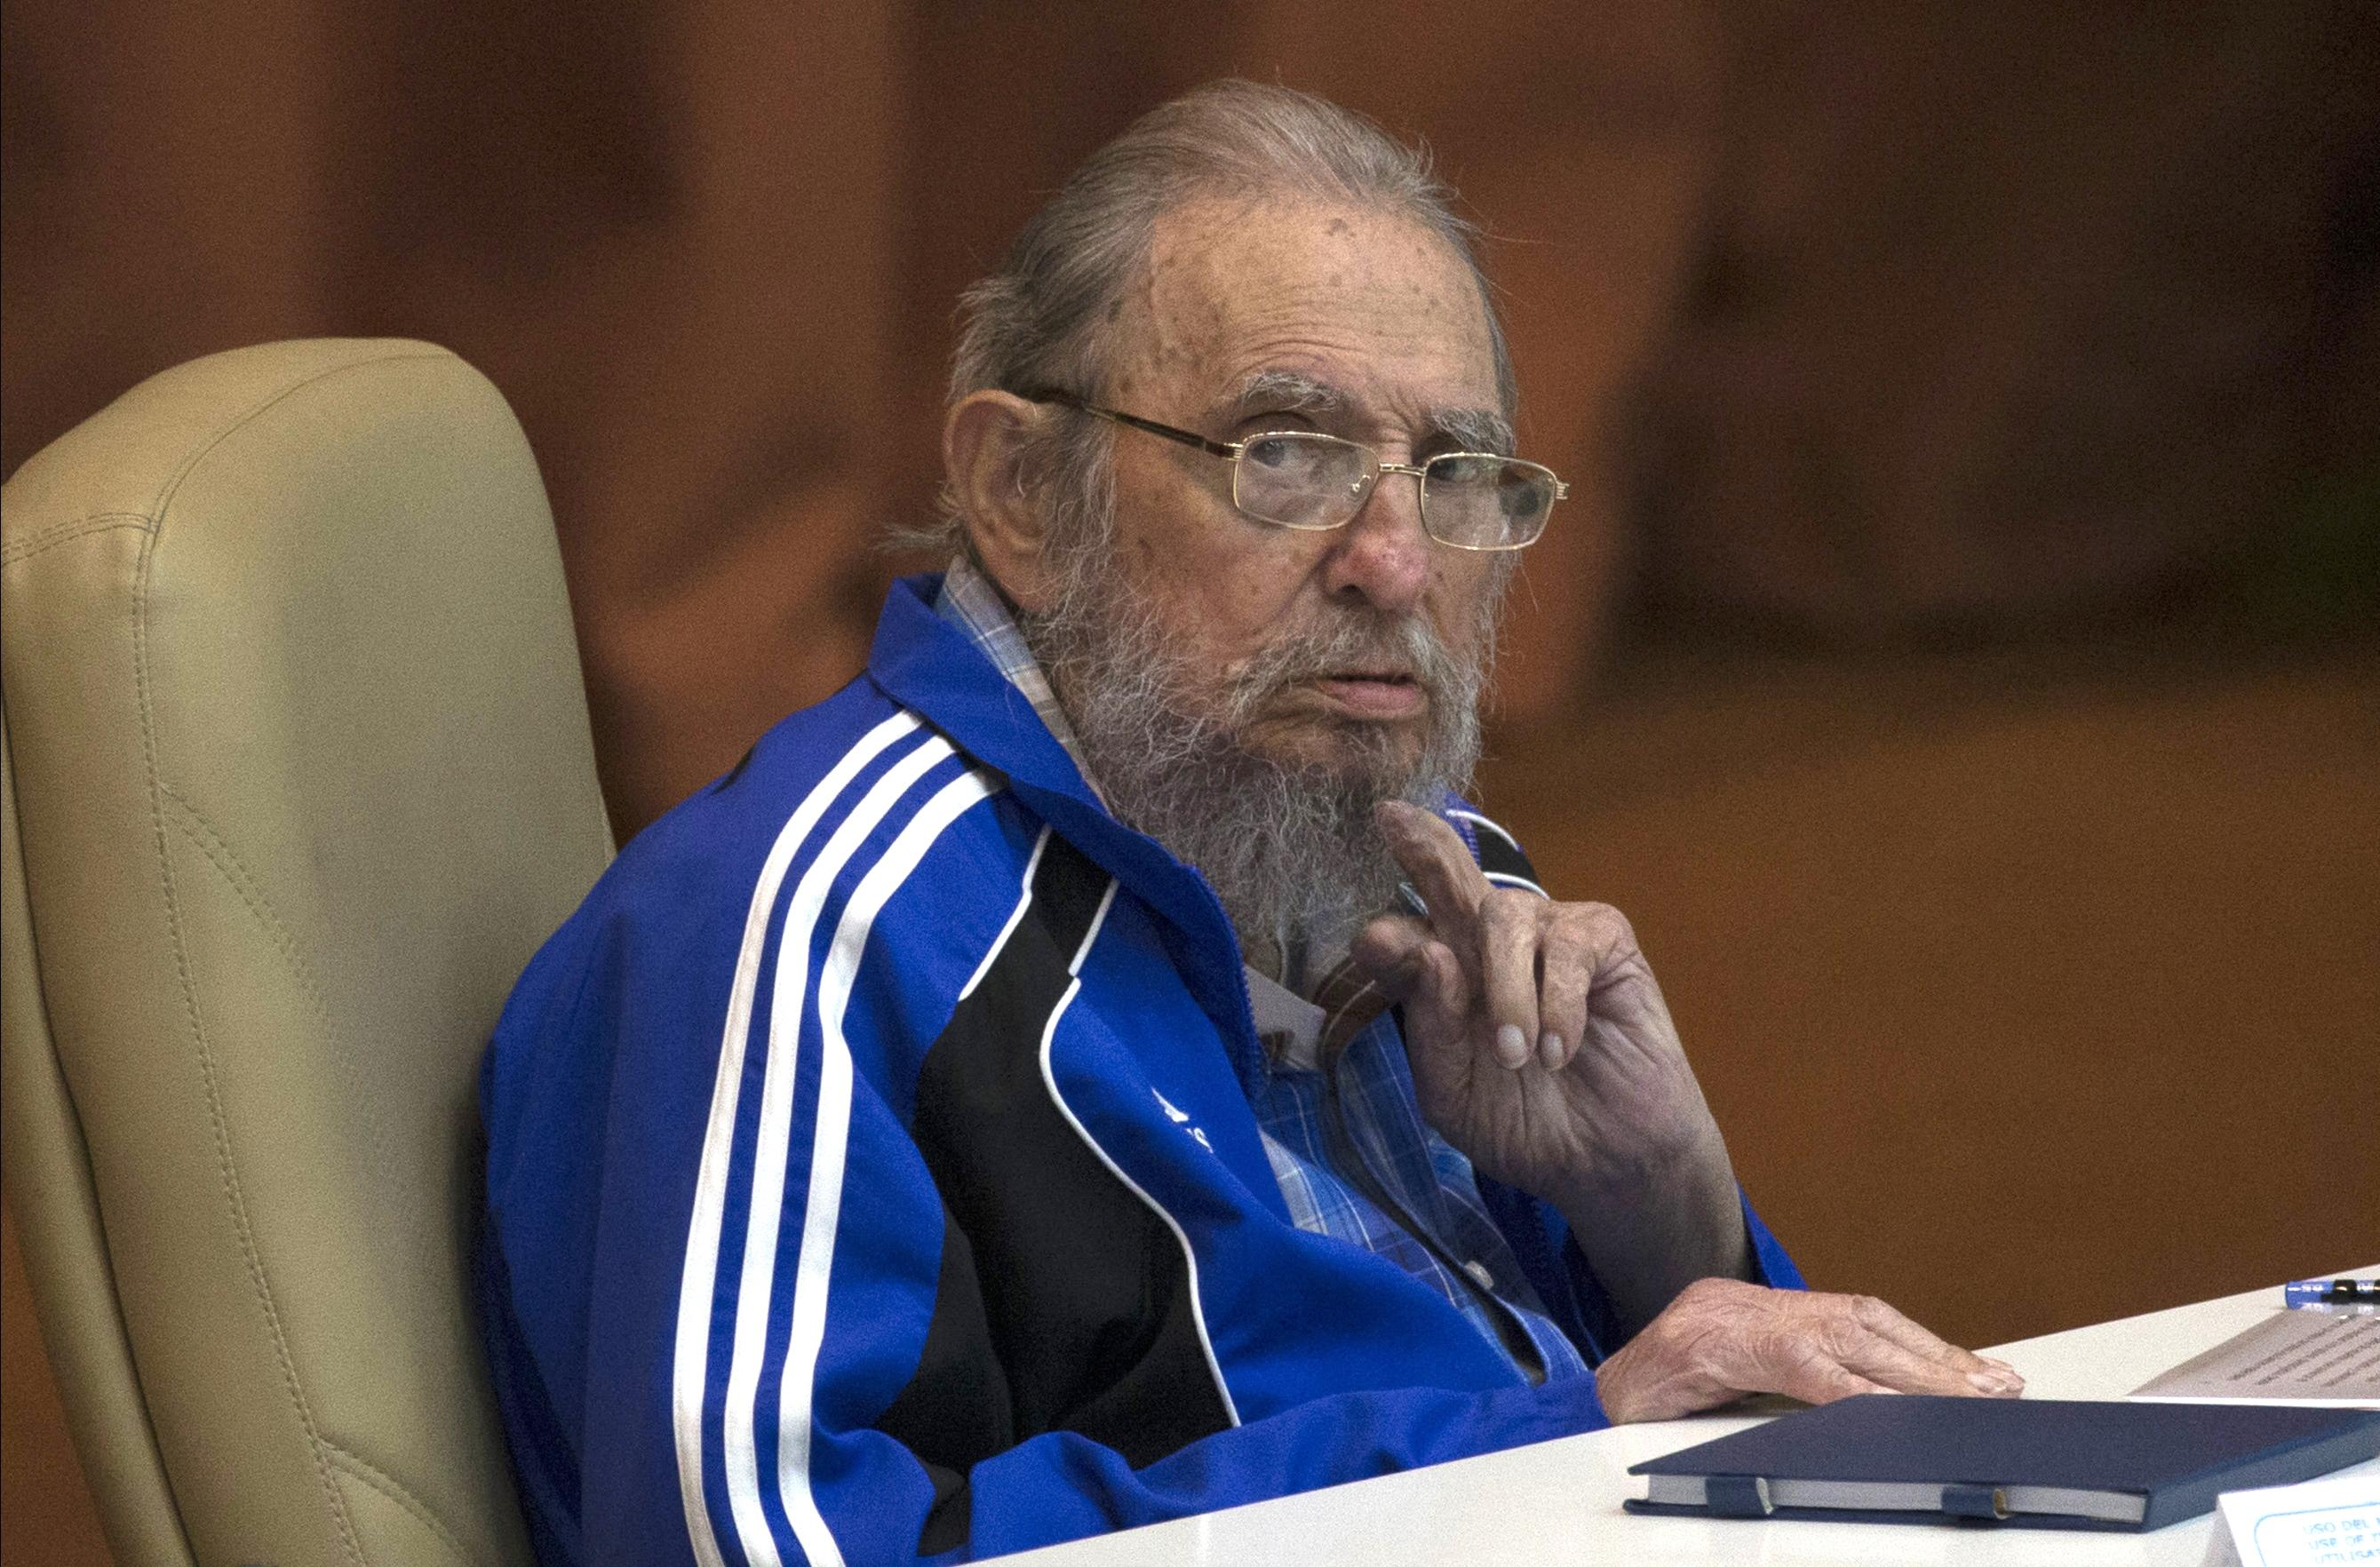 In this April 19, 2016 file photo, Fidel Castro attends the last day of the 7th Cuban Communist Party Congress in Havana, Cuba. Fidel Castro formally stepped down in 2008 after suffering gastrointestinal ailments and public appearances have been increasingly unusual in recent years. Cuban President Raul Castro has announced the death of his brother Fidel Castro at age 90 on Cuban state media on Friday, Nov. 25, 2016.  Ismael Francisco/Cuba debate via AP, St. George News